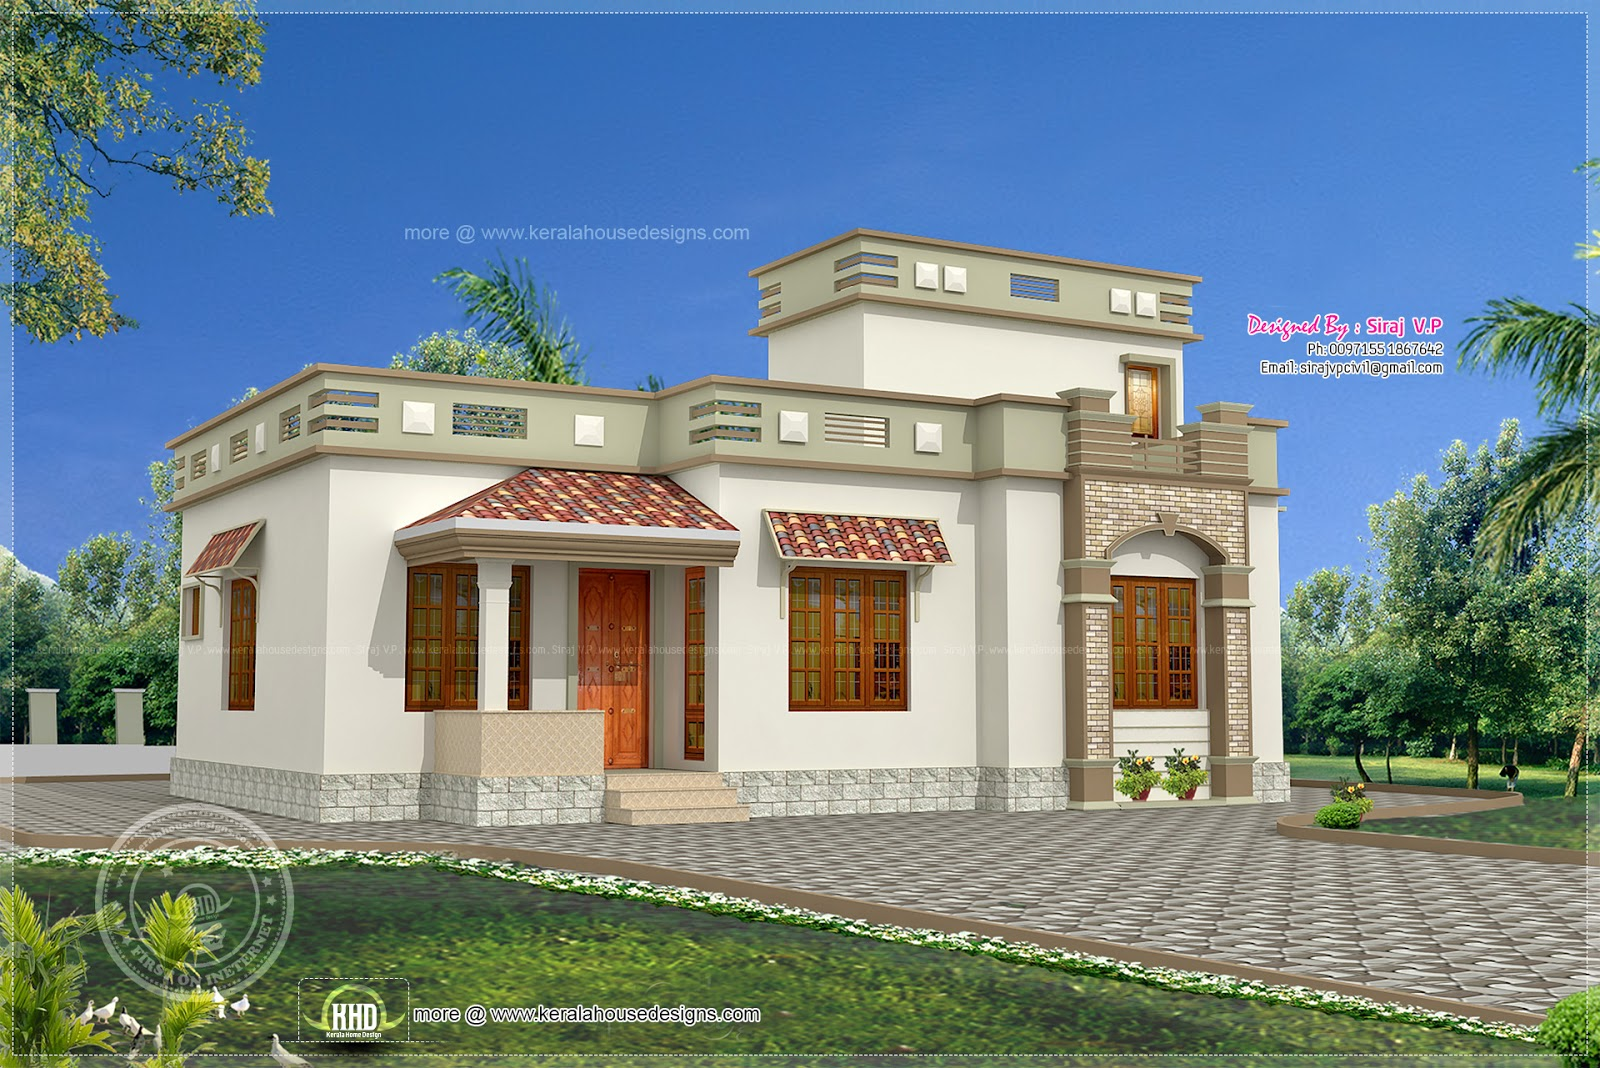 House plans in kerala low budget the Low budget house plans